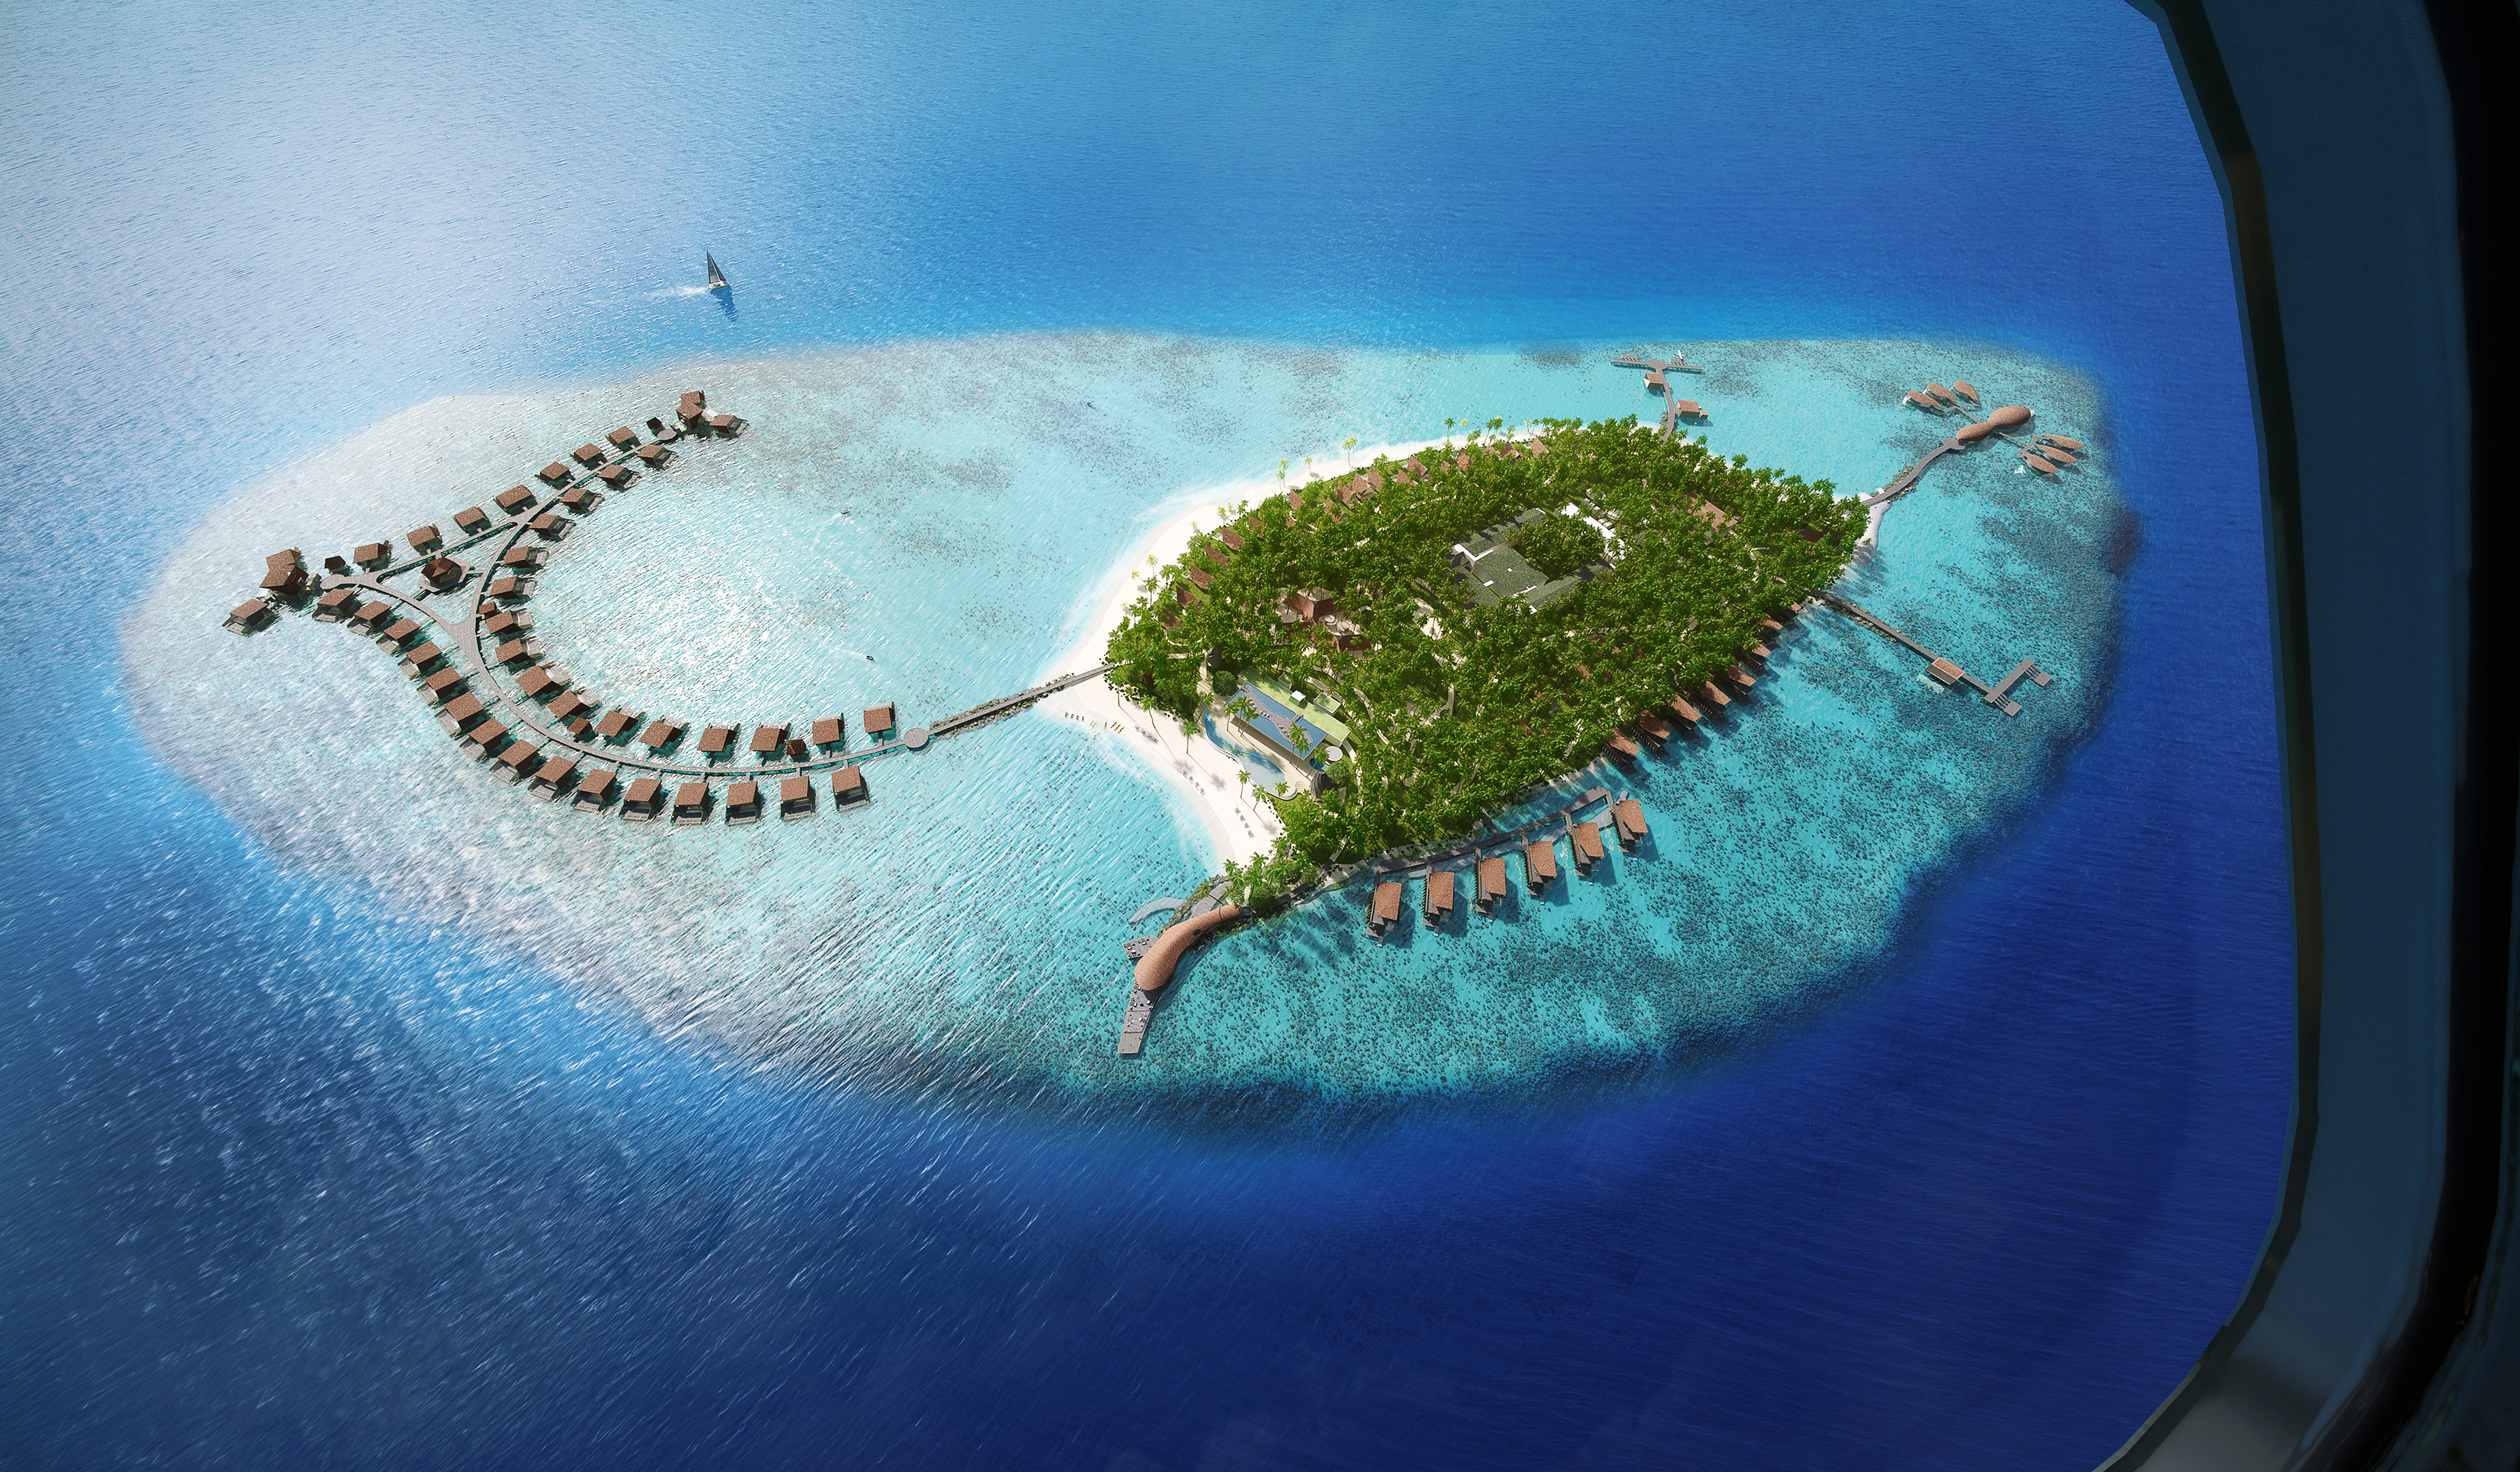 Starwood Hotels Resorts Brings The Iconic St Regis Brand To Maldives Business Wire